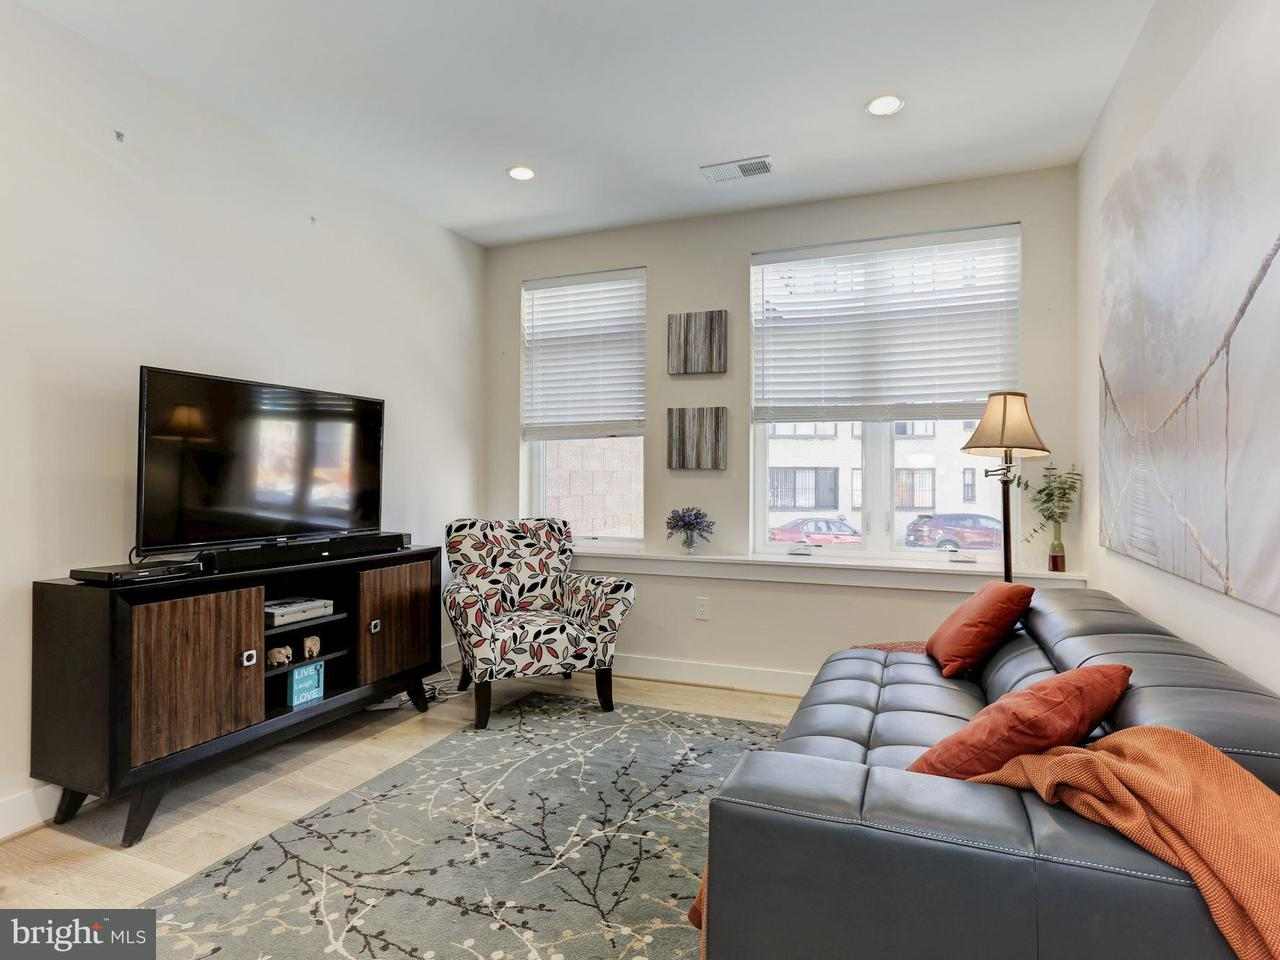 Additional photo for property listing at 3035 15th St Nw #104 3035 15th St Nw #104 Washington, District Of Columbia 20009 Verenigde Staten